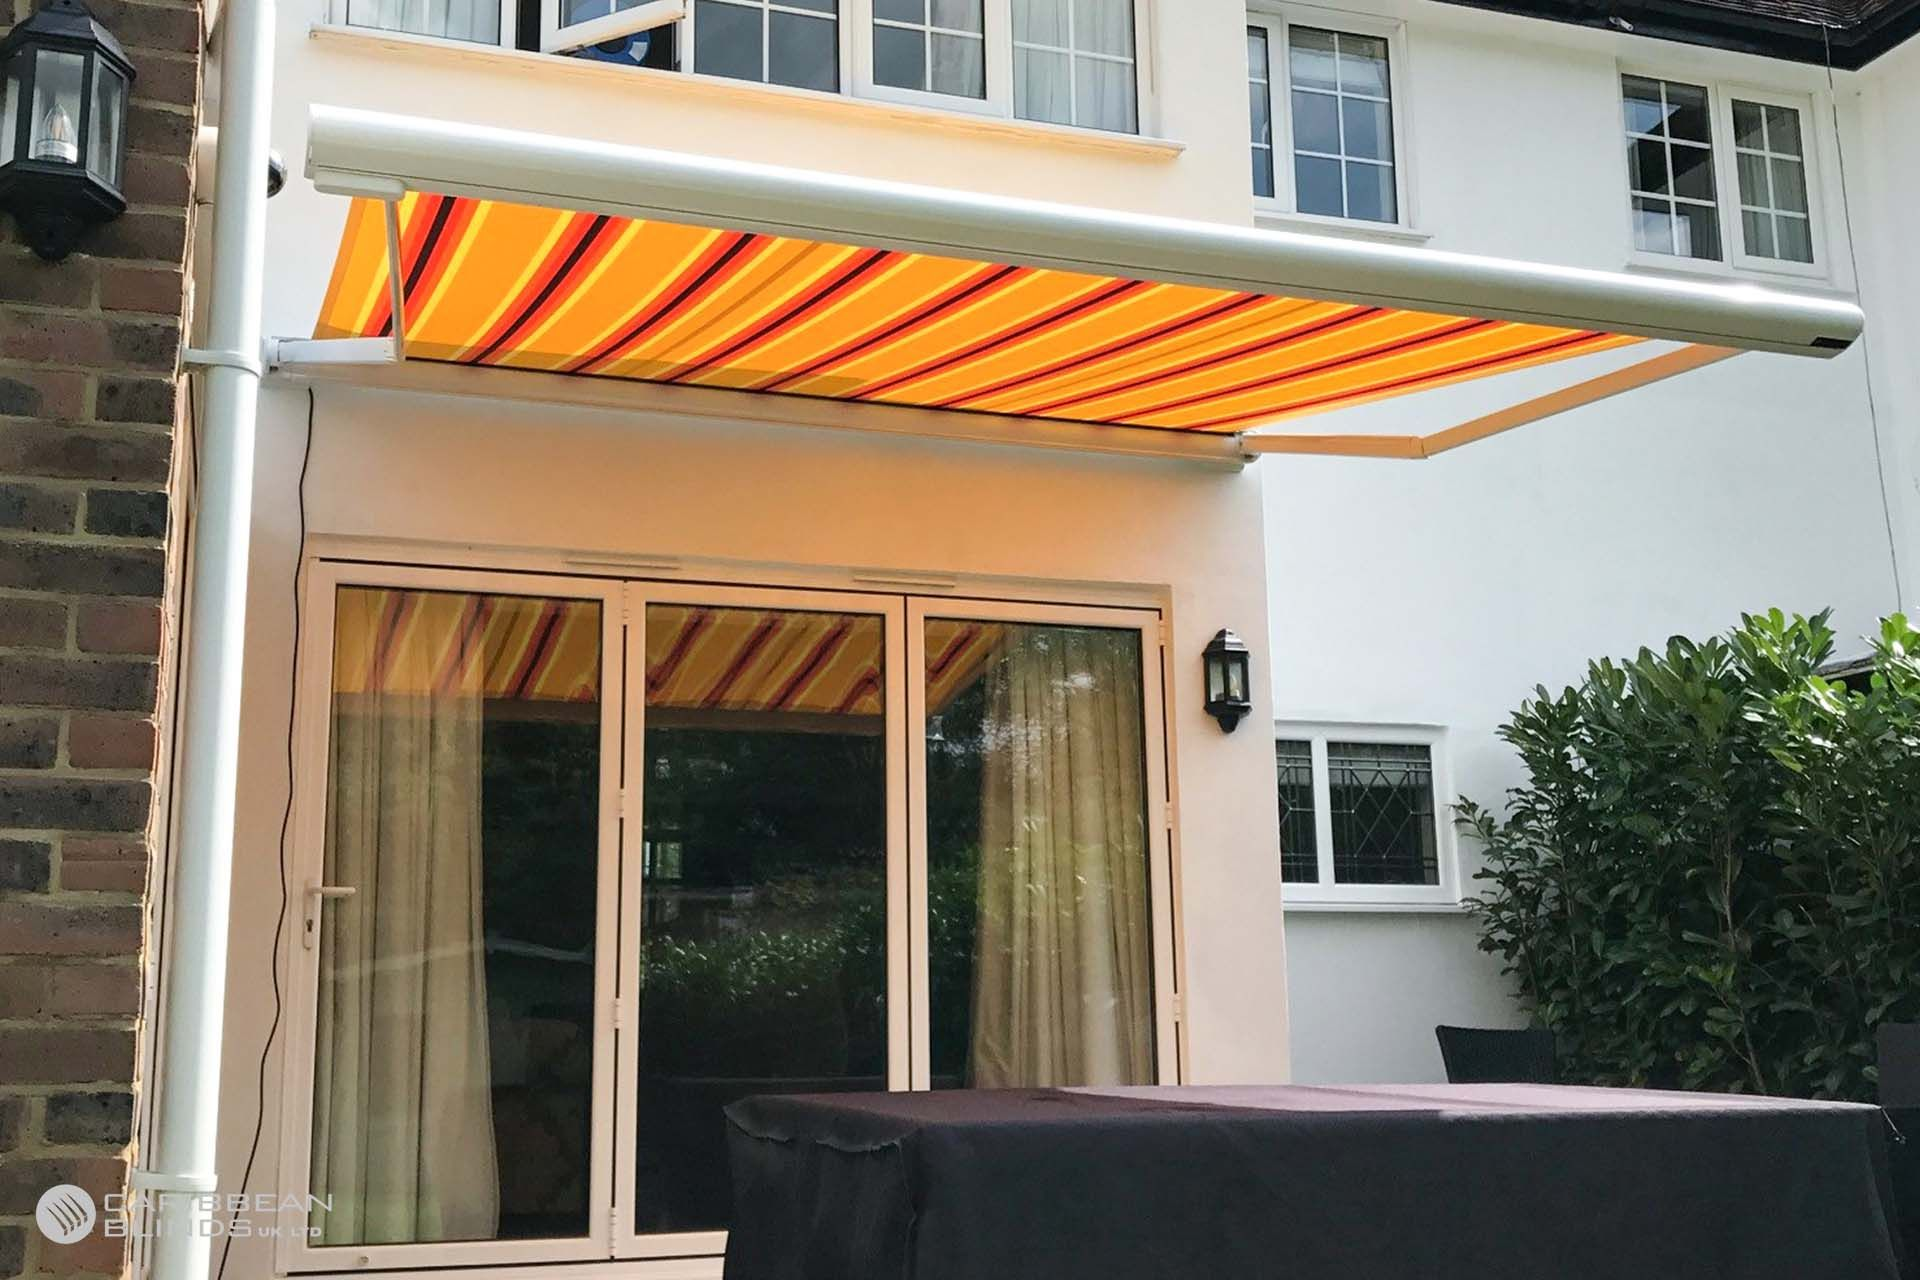 Patio Awnings Outdoor Awnings Patio Awning Patio Design Outdoor Rooms